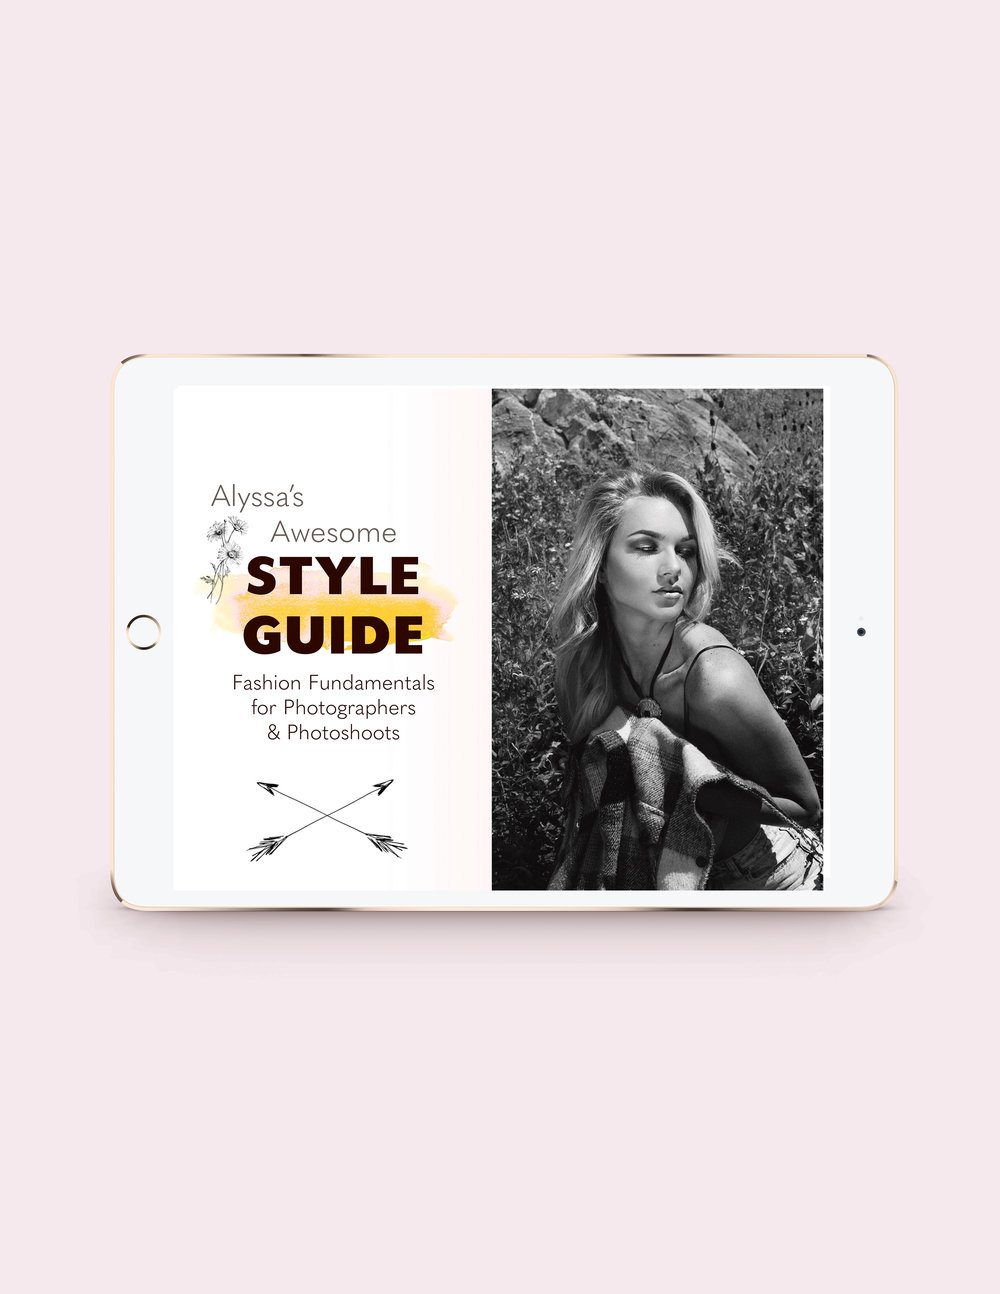 Alyssa's Awesome Style Guide - Fashion Styling for Photoshoots